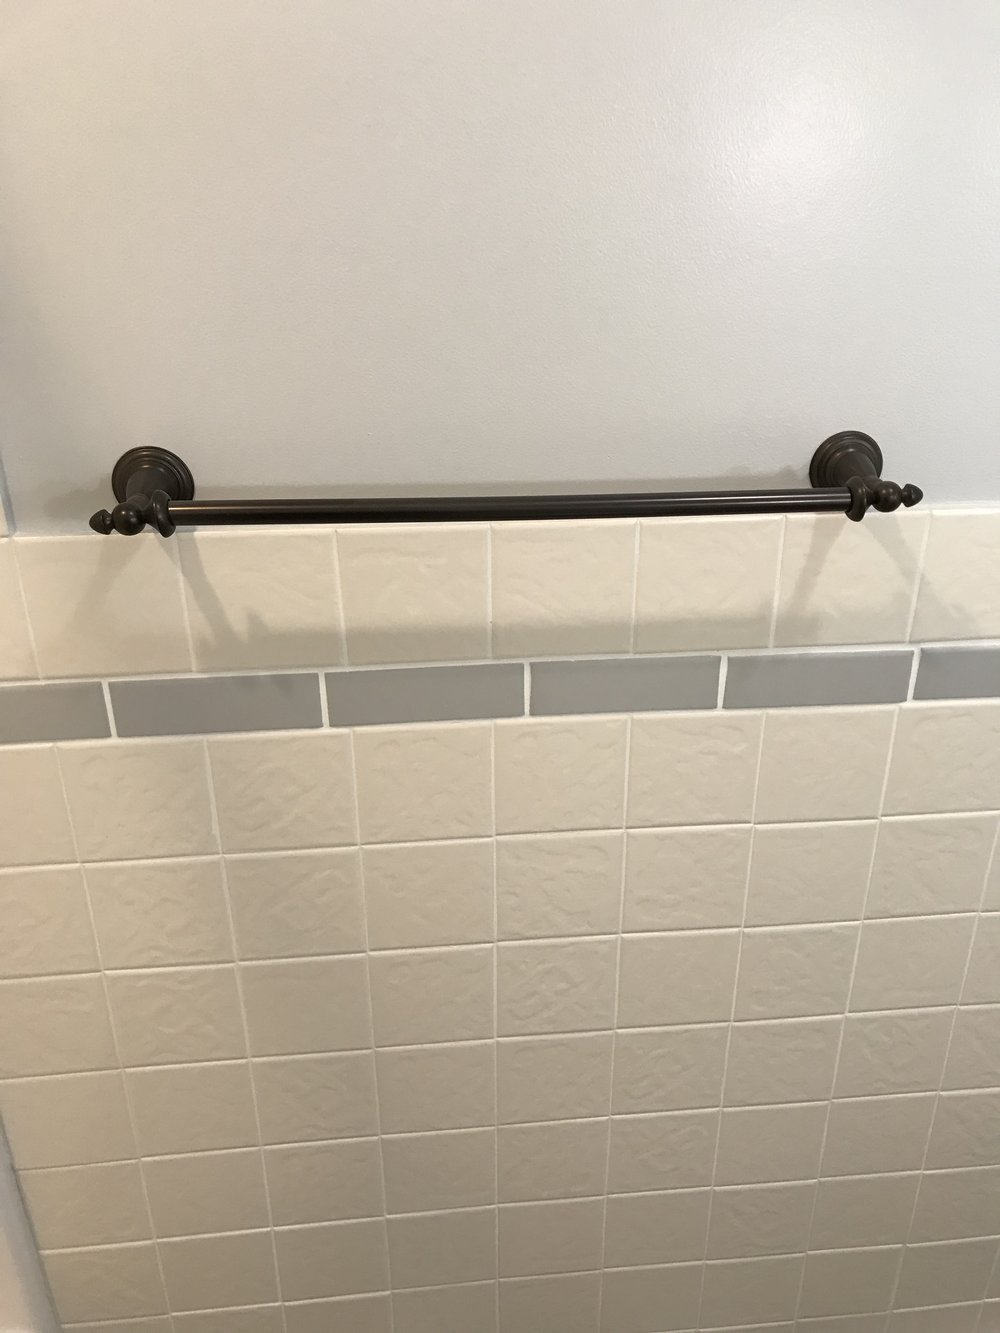 Upgraded bath fixtures